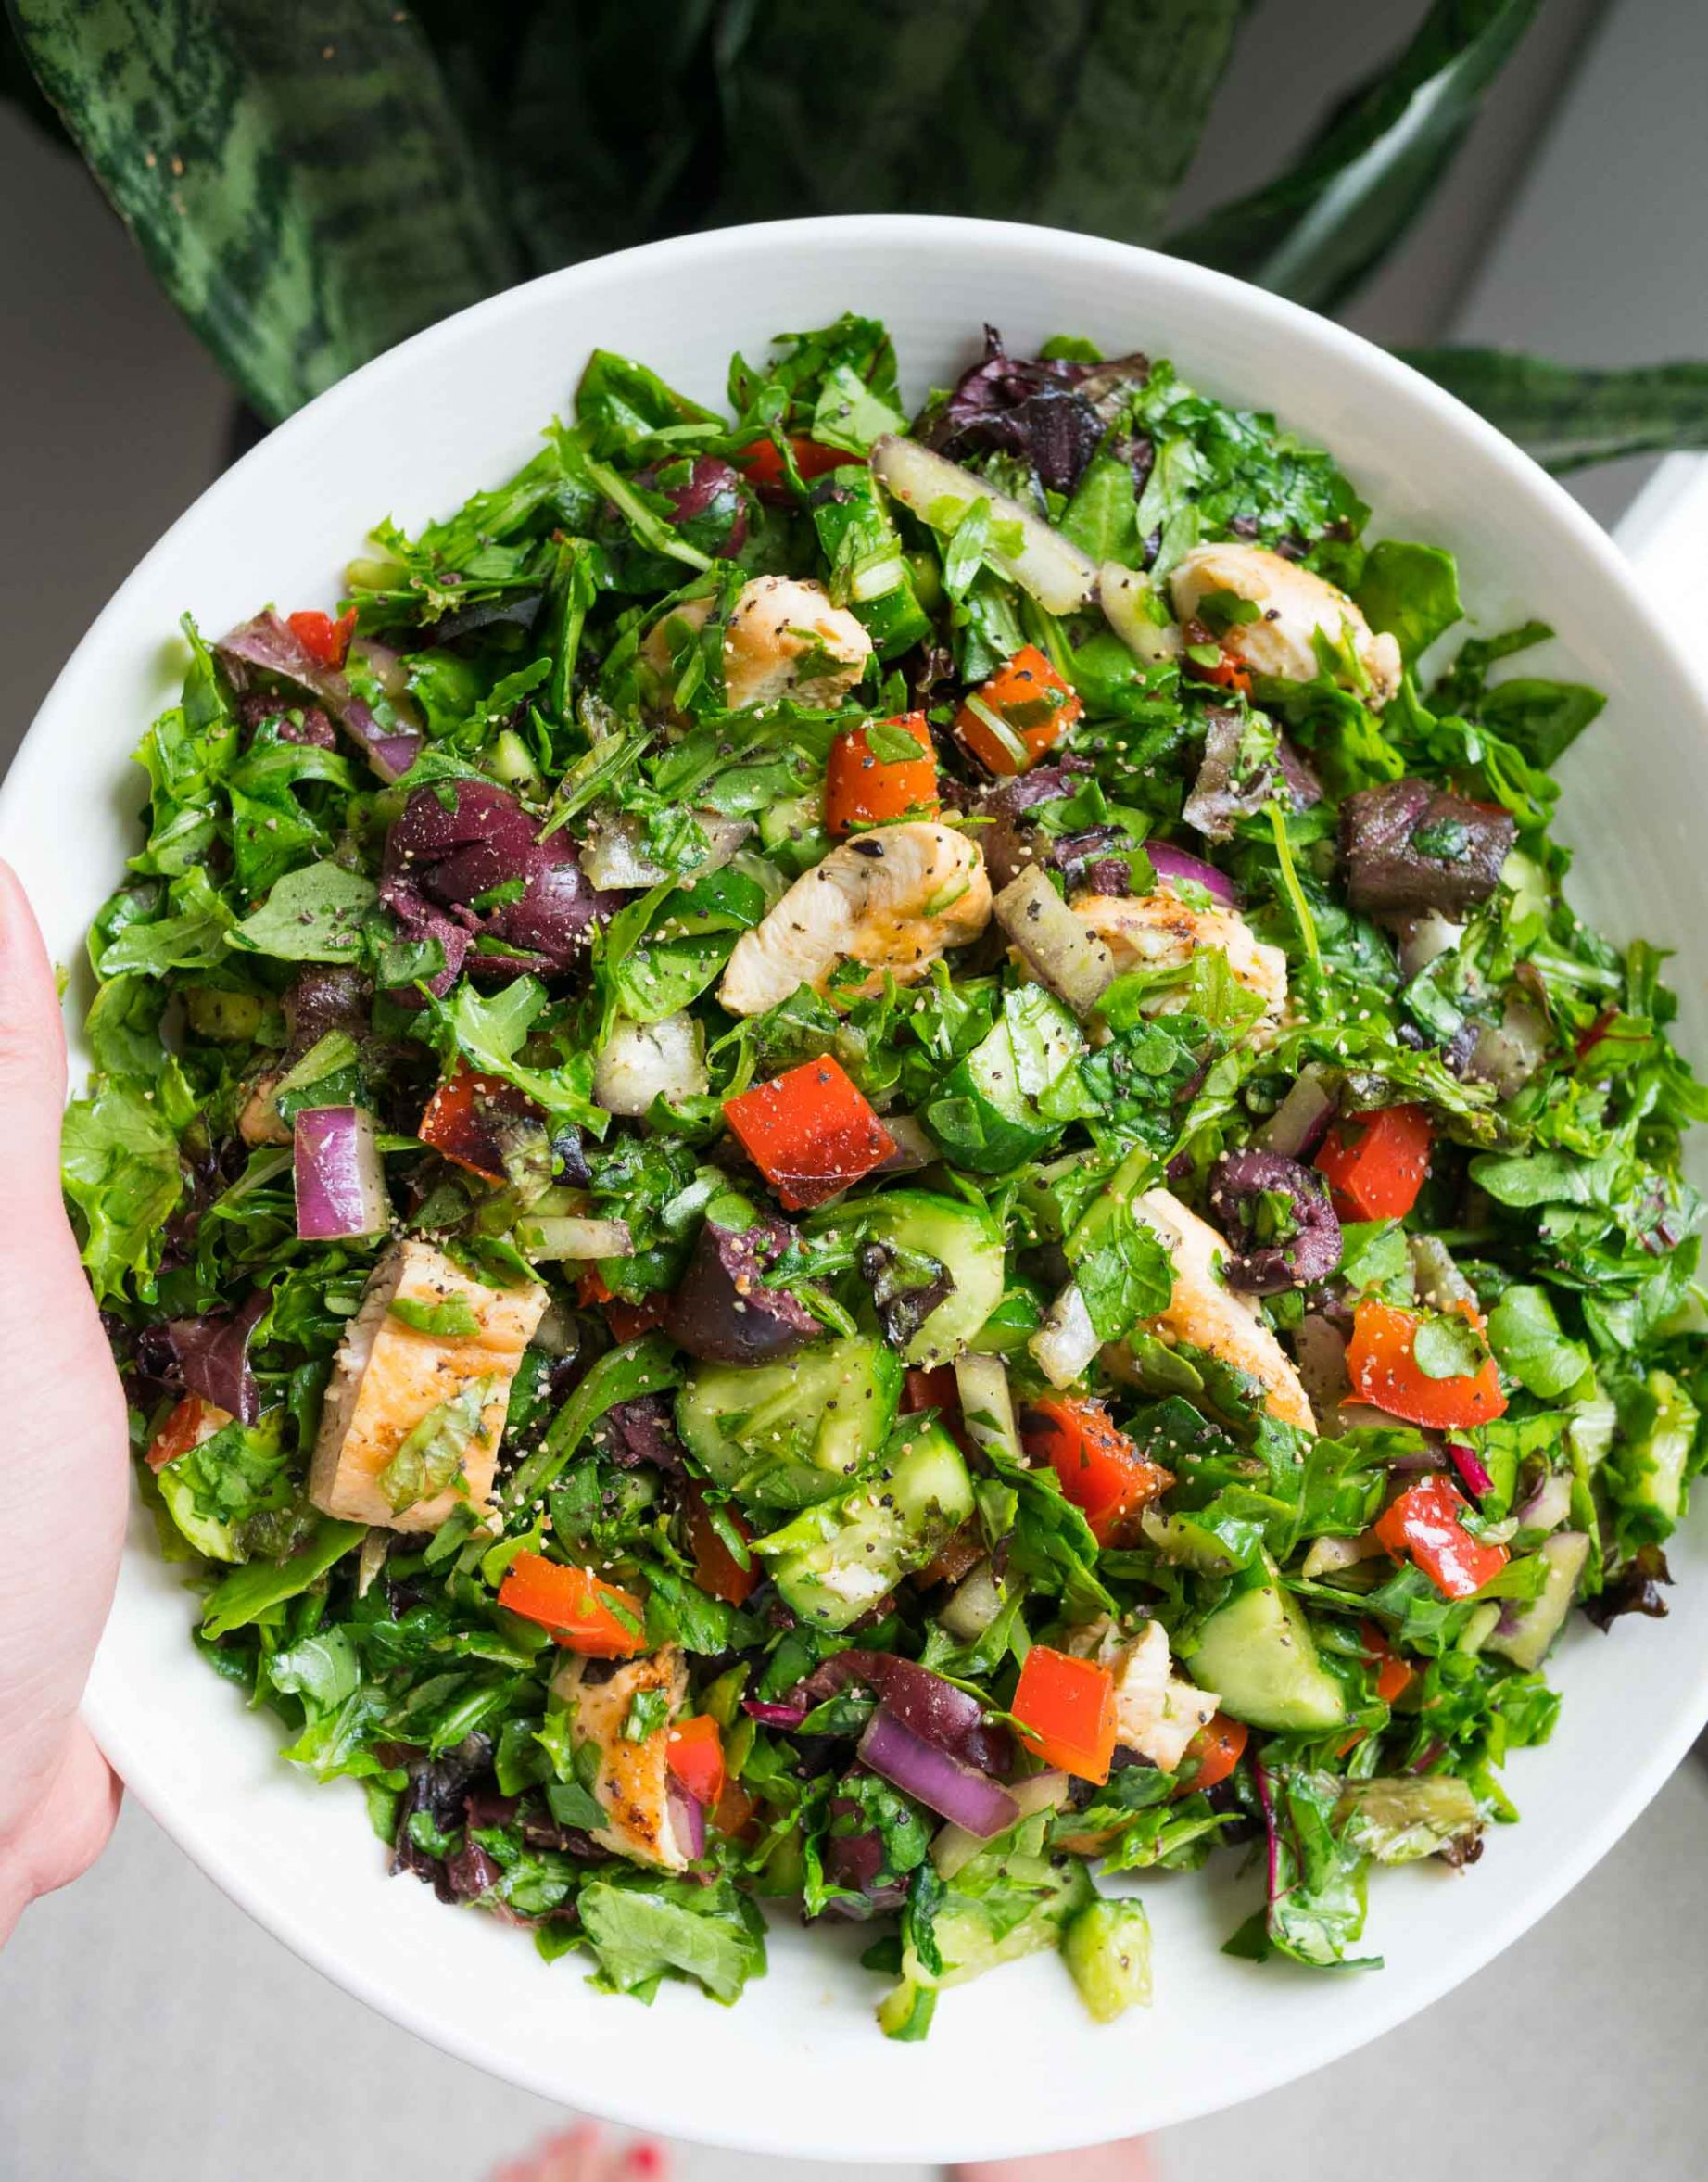 Quick Basic Chopped Salad - Easy Salad Recipe with Lots of Flavor - Salad Recipes You Can Make At Home